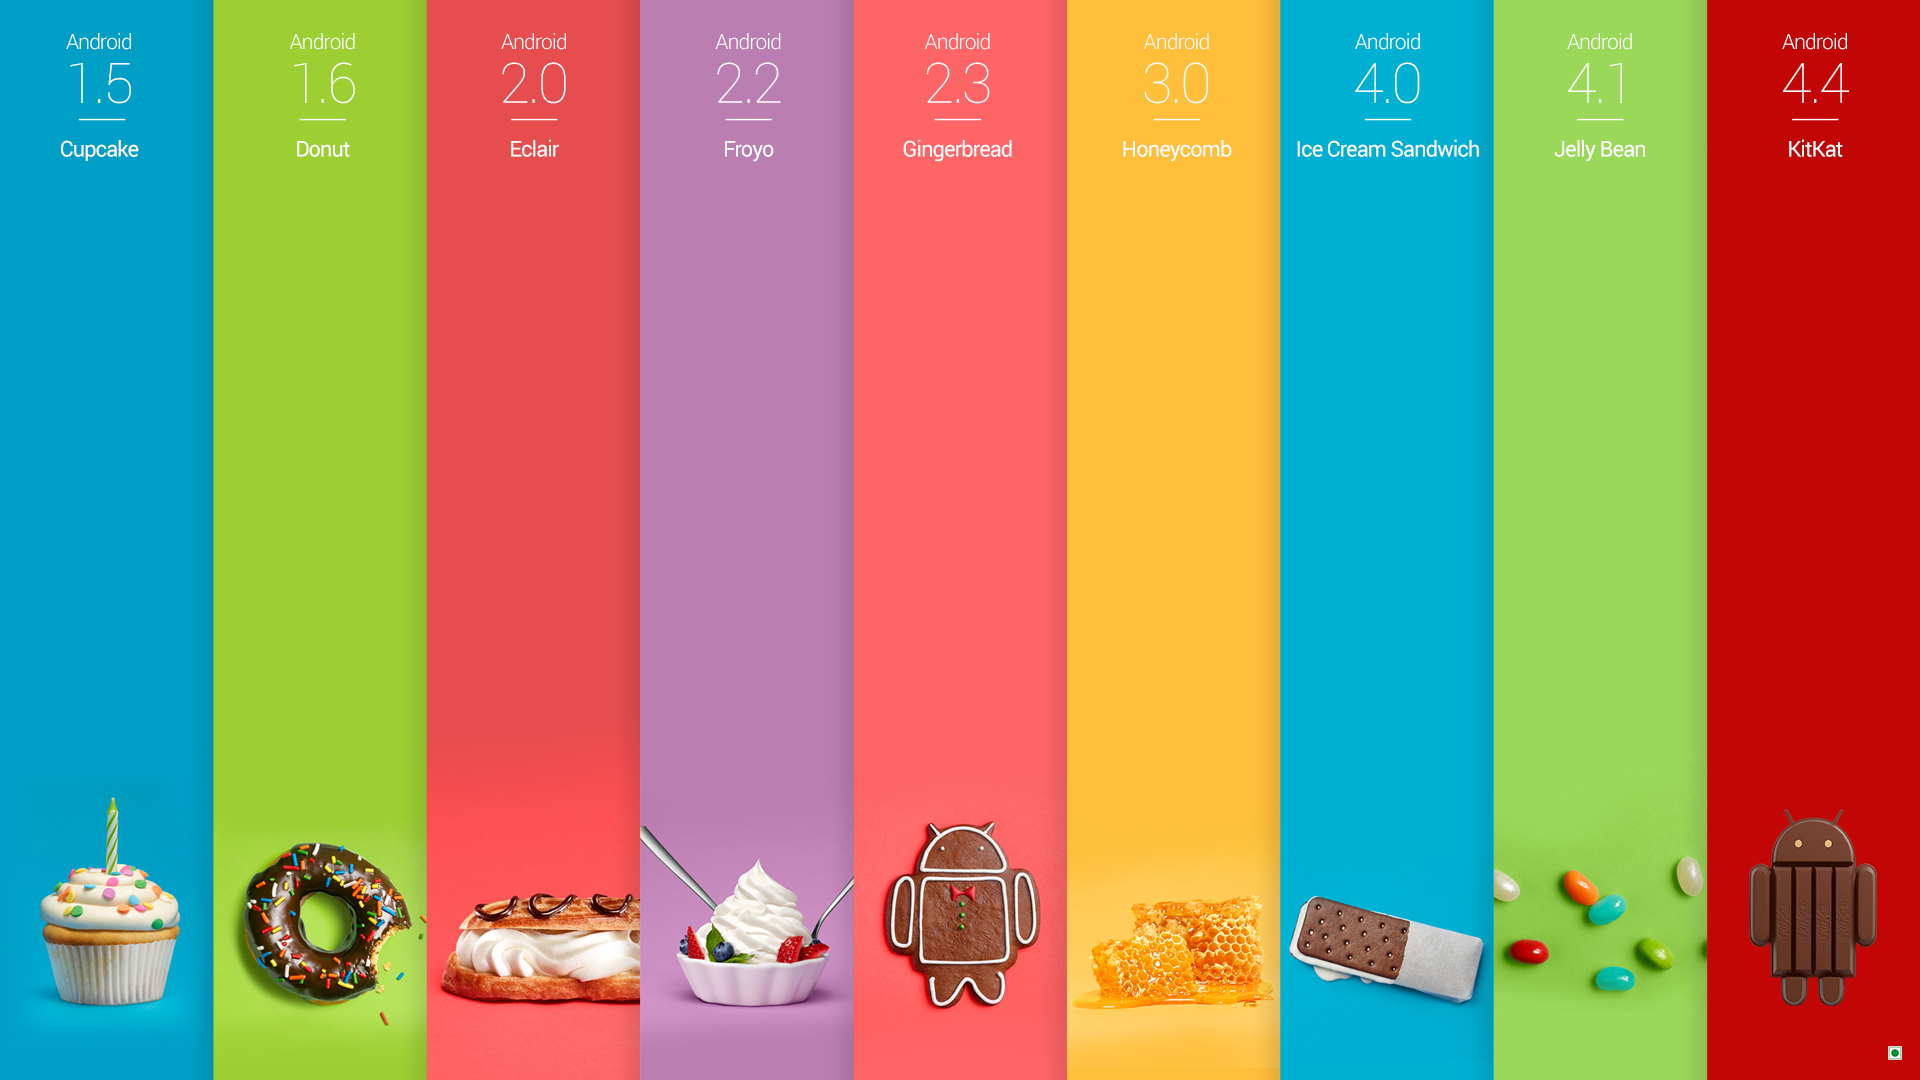 Android 44 kitkat wallpapers method of tried kitkatwall3 voltagebd